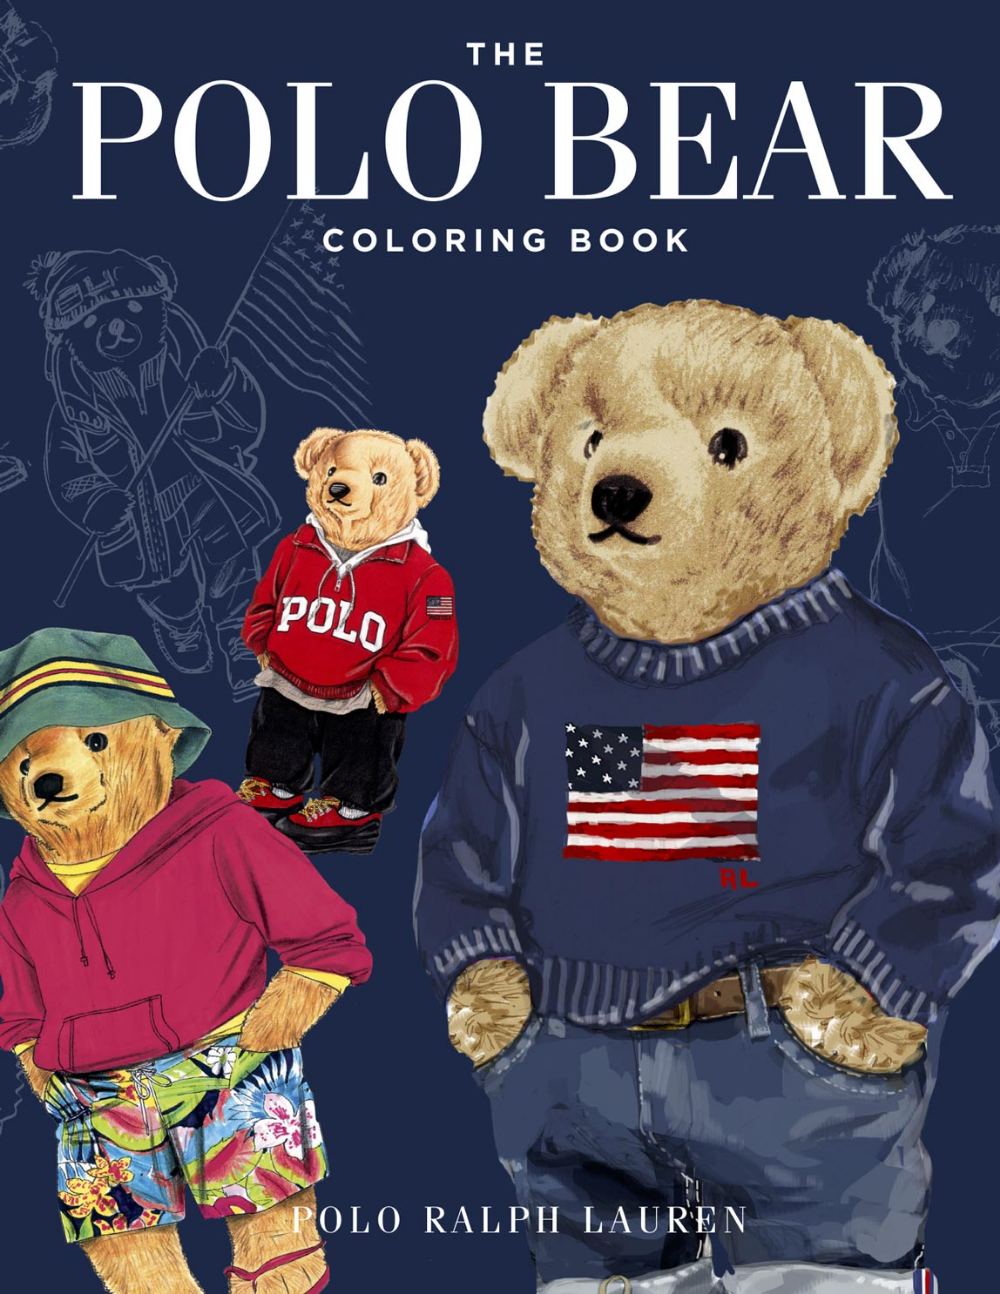 The Polo Bear Coloring Book By Polo Ralph Lauren Polo Ralph Lauren Ralph Lauren Logo Ralph Lauren Purple Label